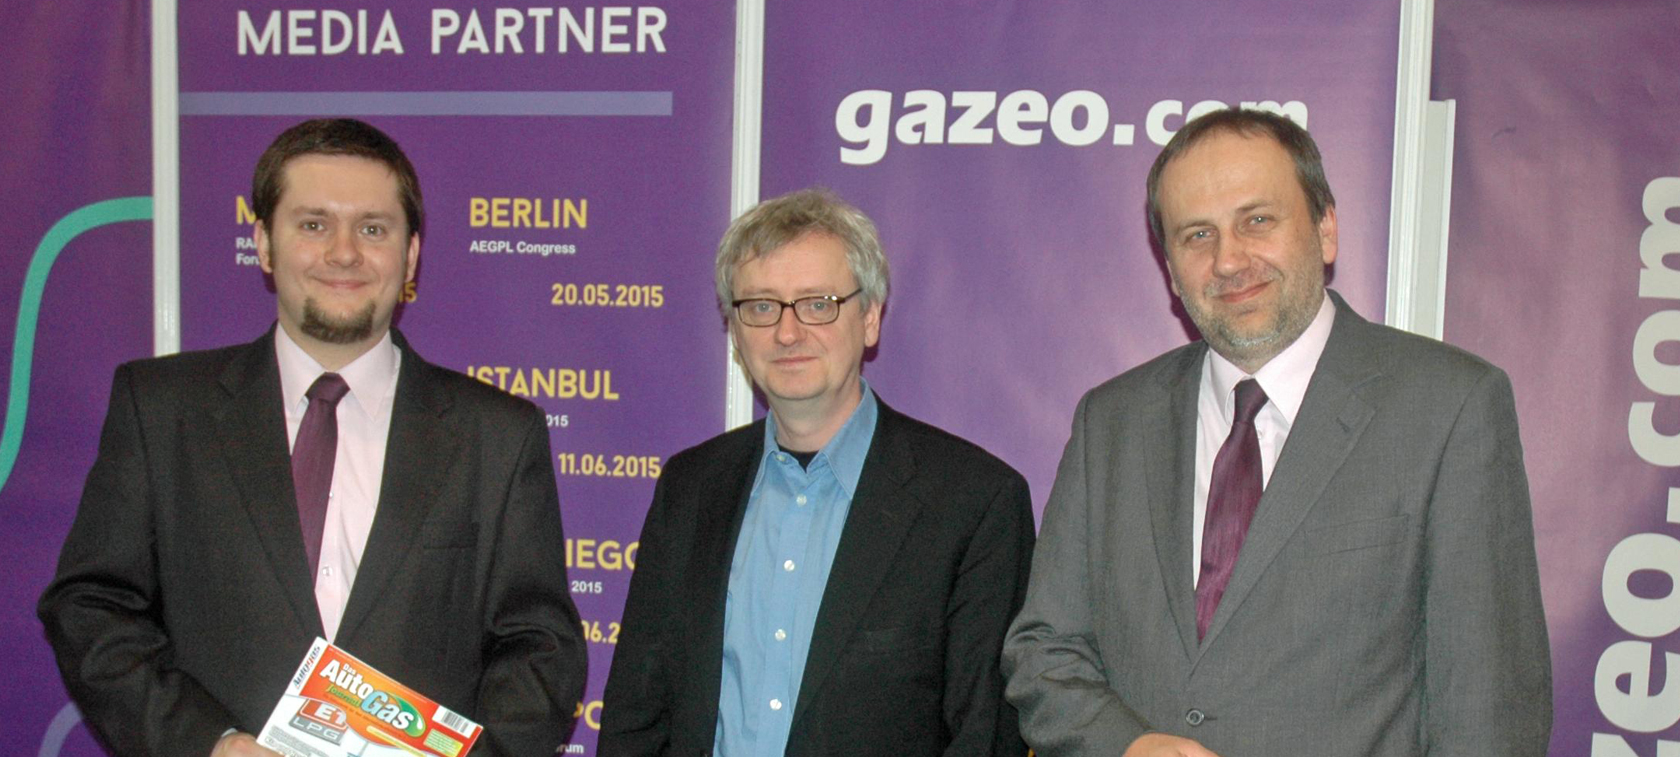 gazeo.com and AutoGas Journal set to cooperate